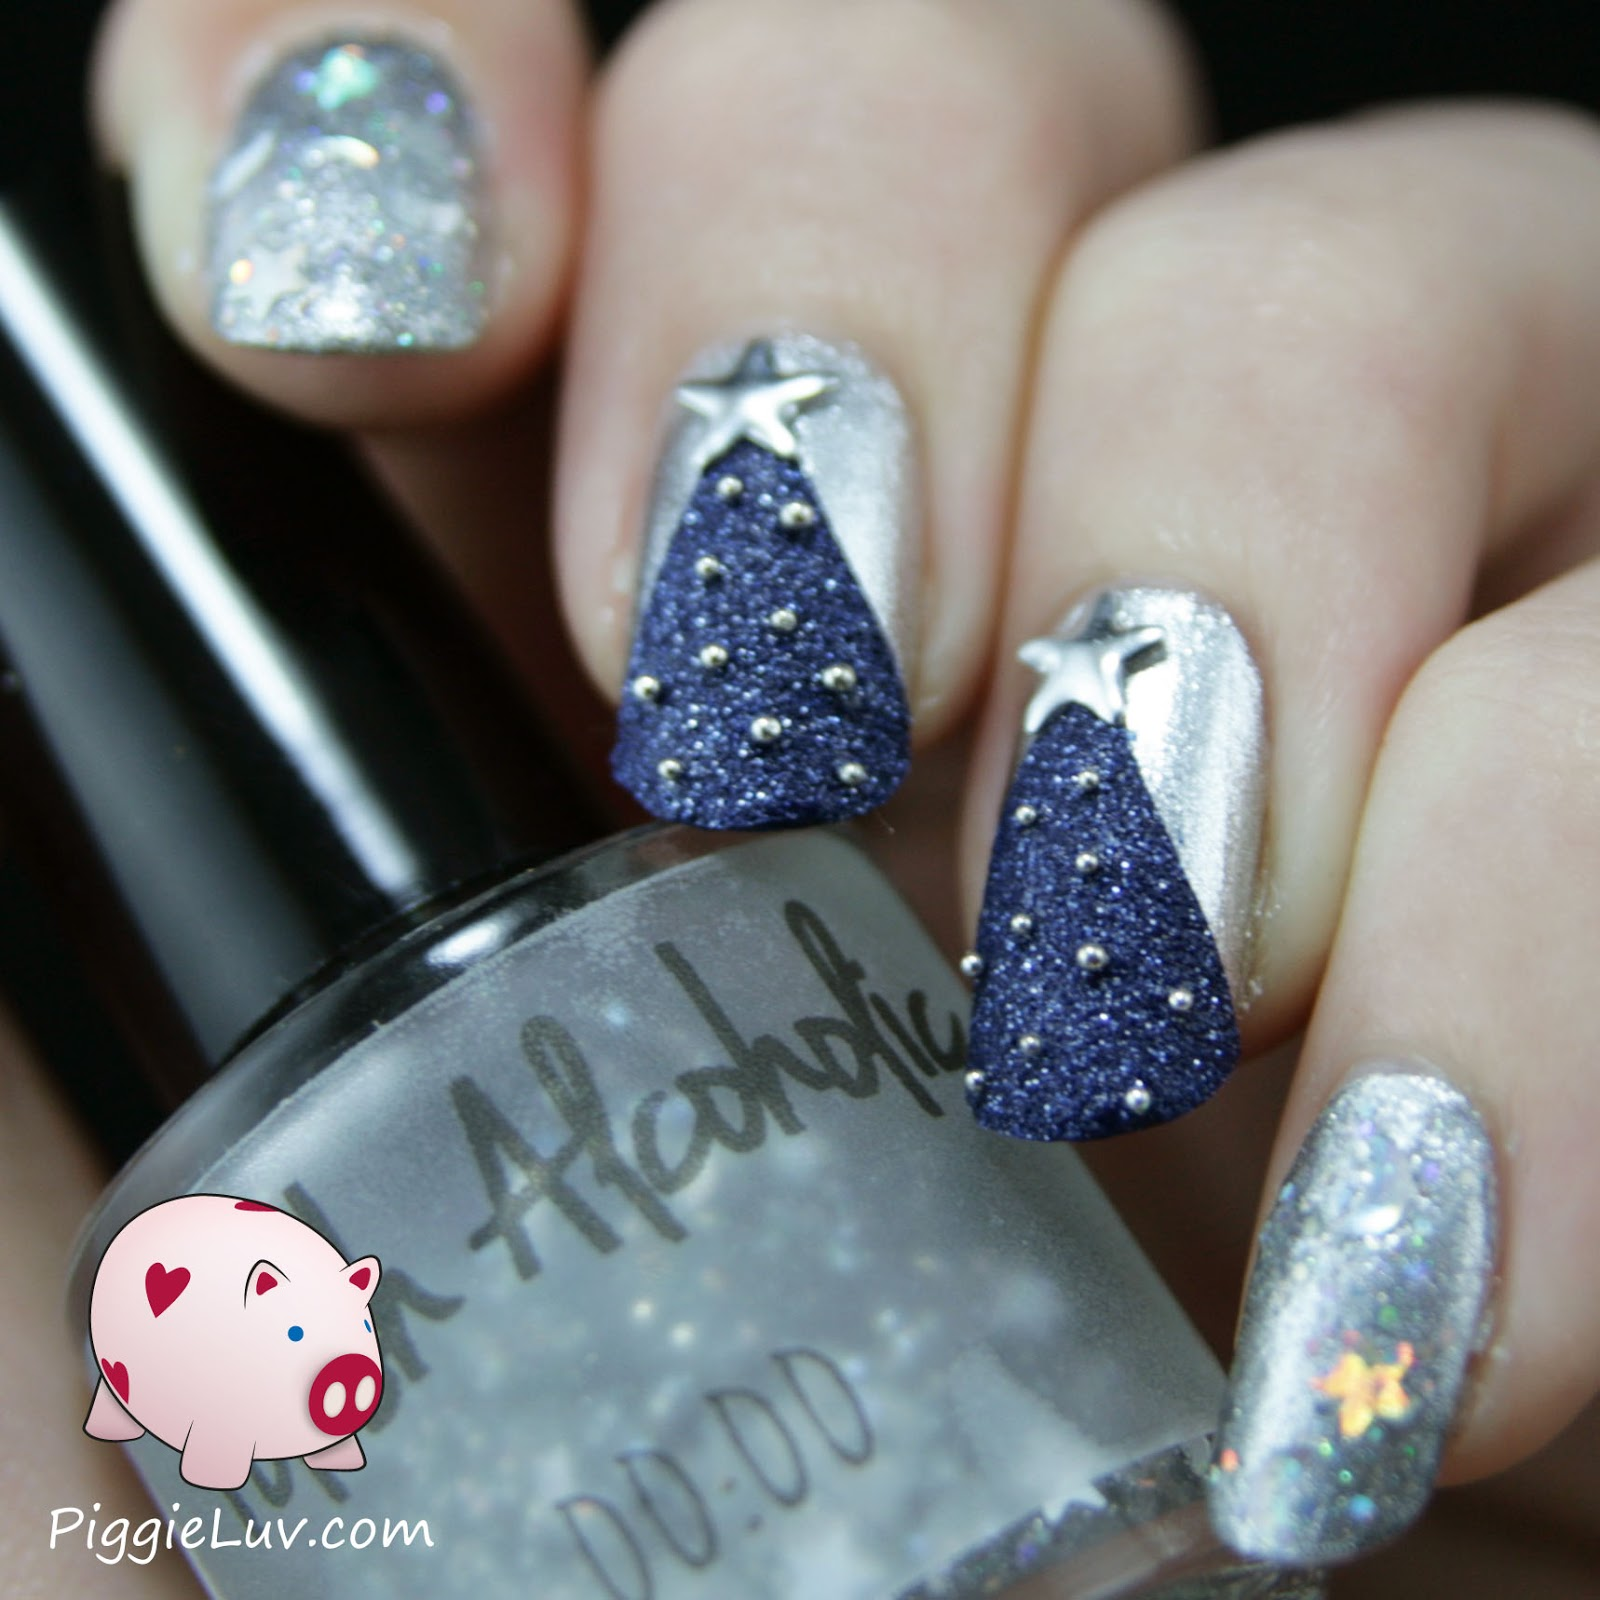 PiggieLuv: Textured Christmas tree nail art